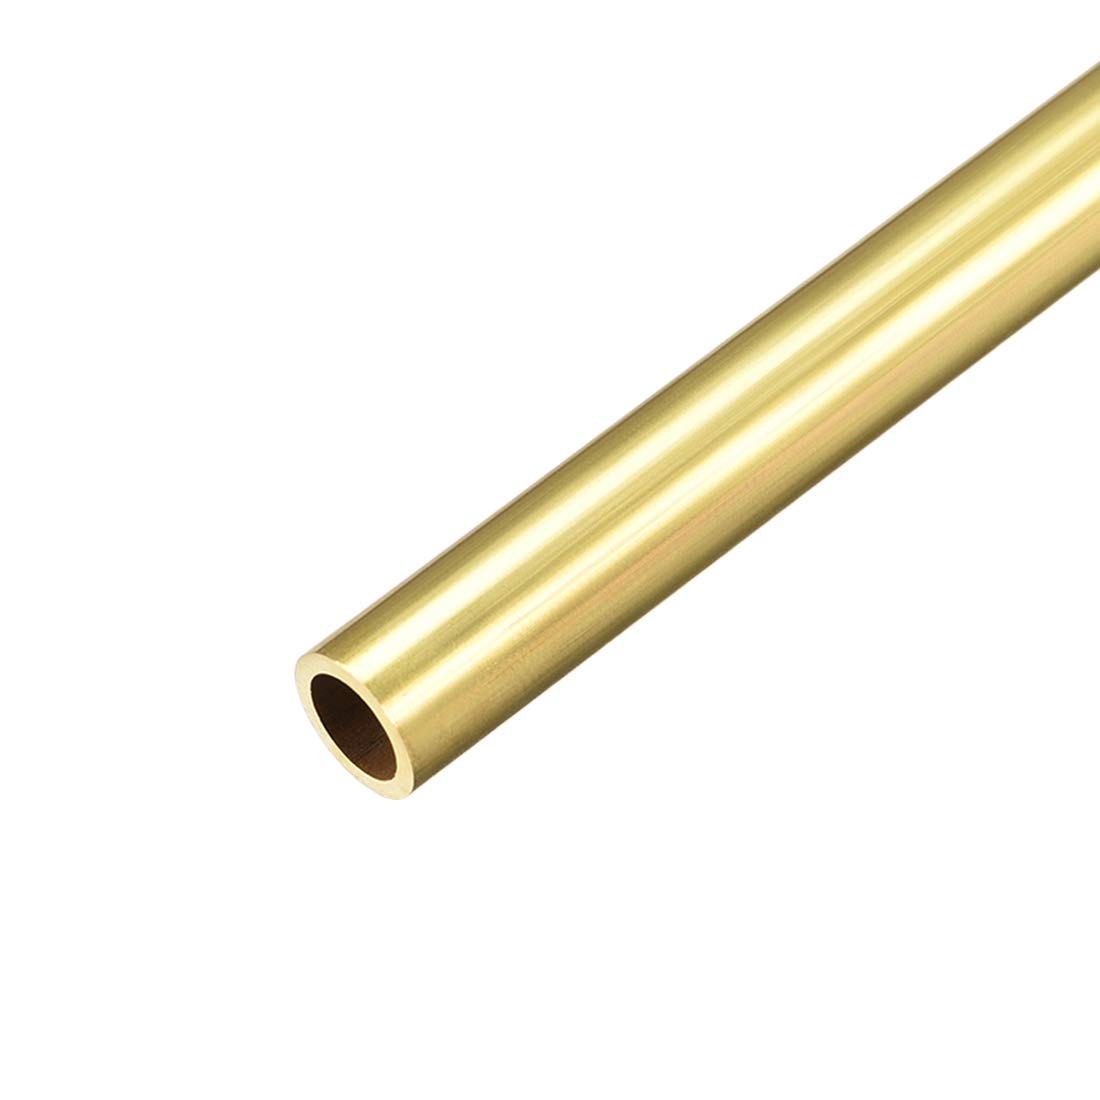 uxcell Brass Round Tube, 300mm Length 10mm OD 1mm Wall Thickness, Seamless Straight Pipe Tubing